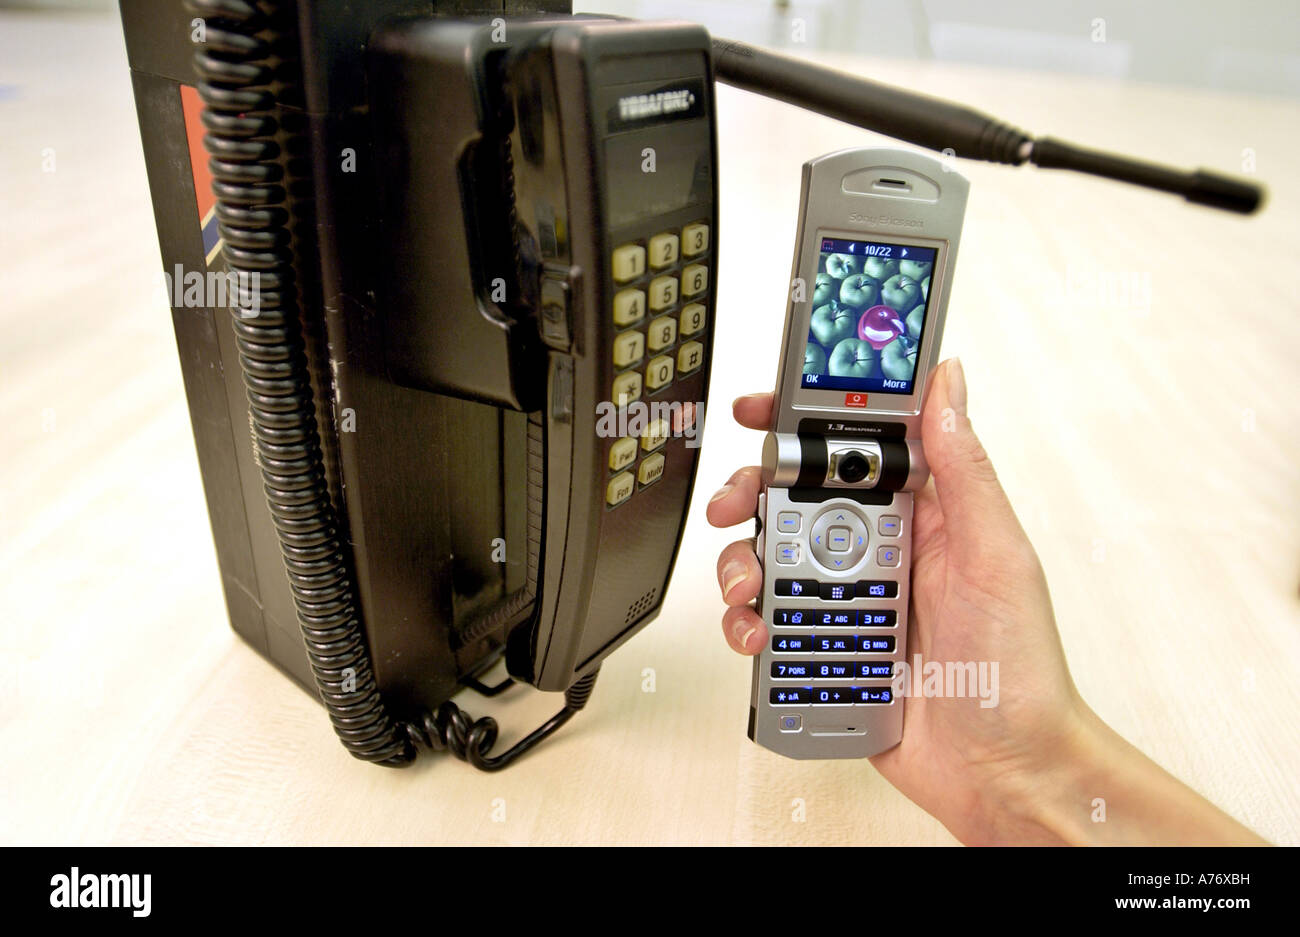 The history of mobile phones displayed with an old model from the 1980s and a 3G Vodafone. - Stock Image